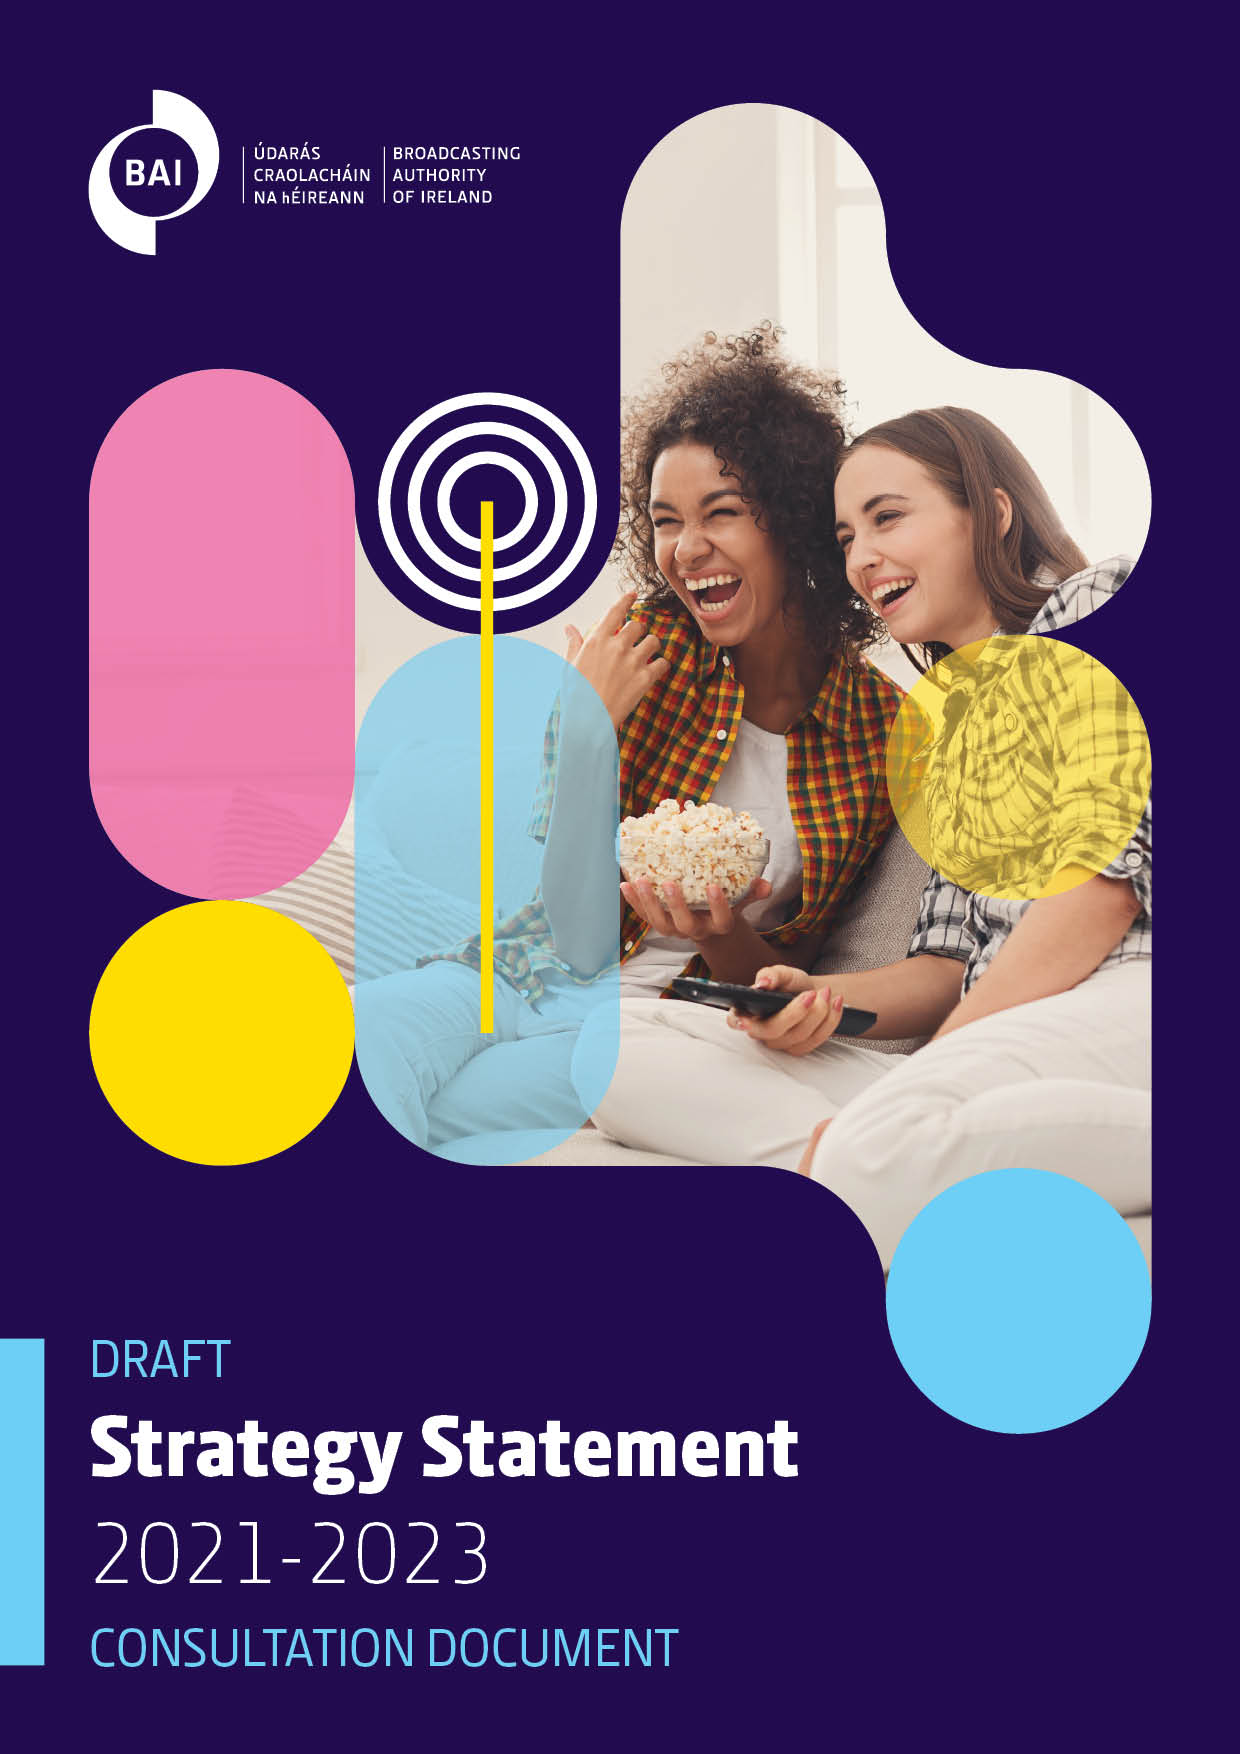 BAI launches public consultation on new Strategy Statement